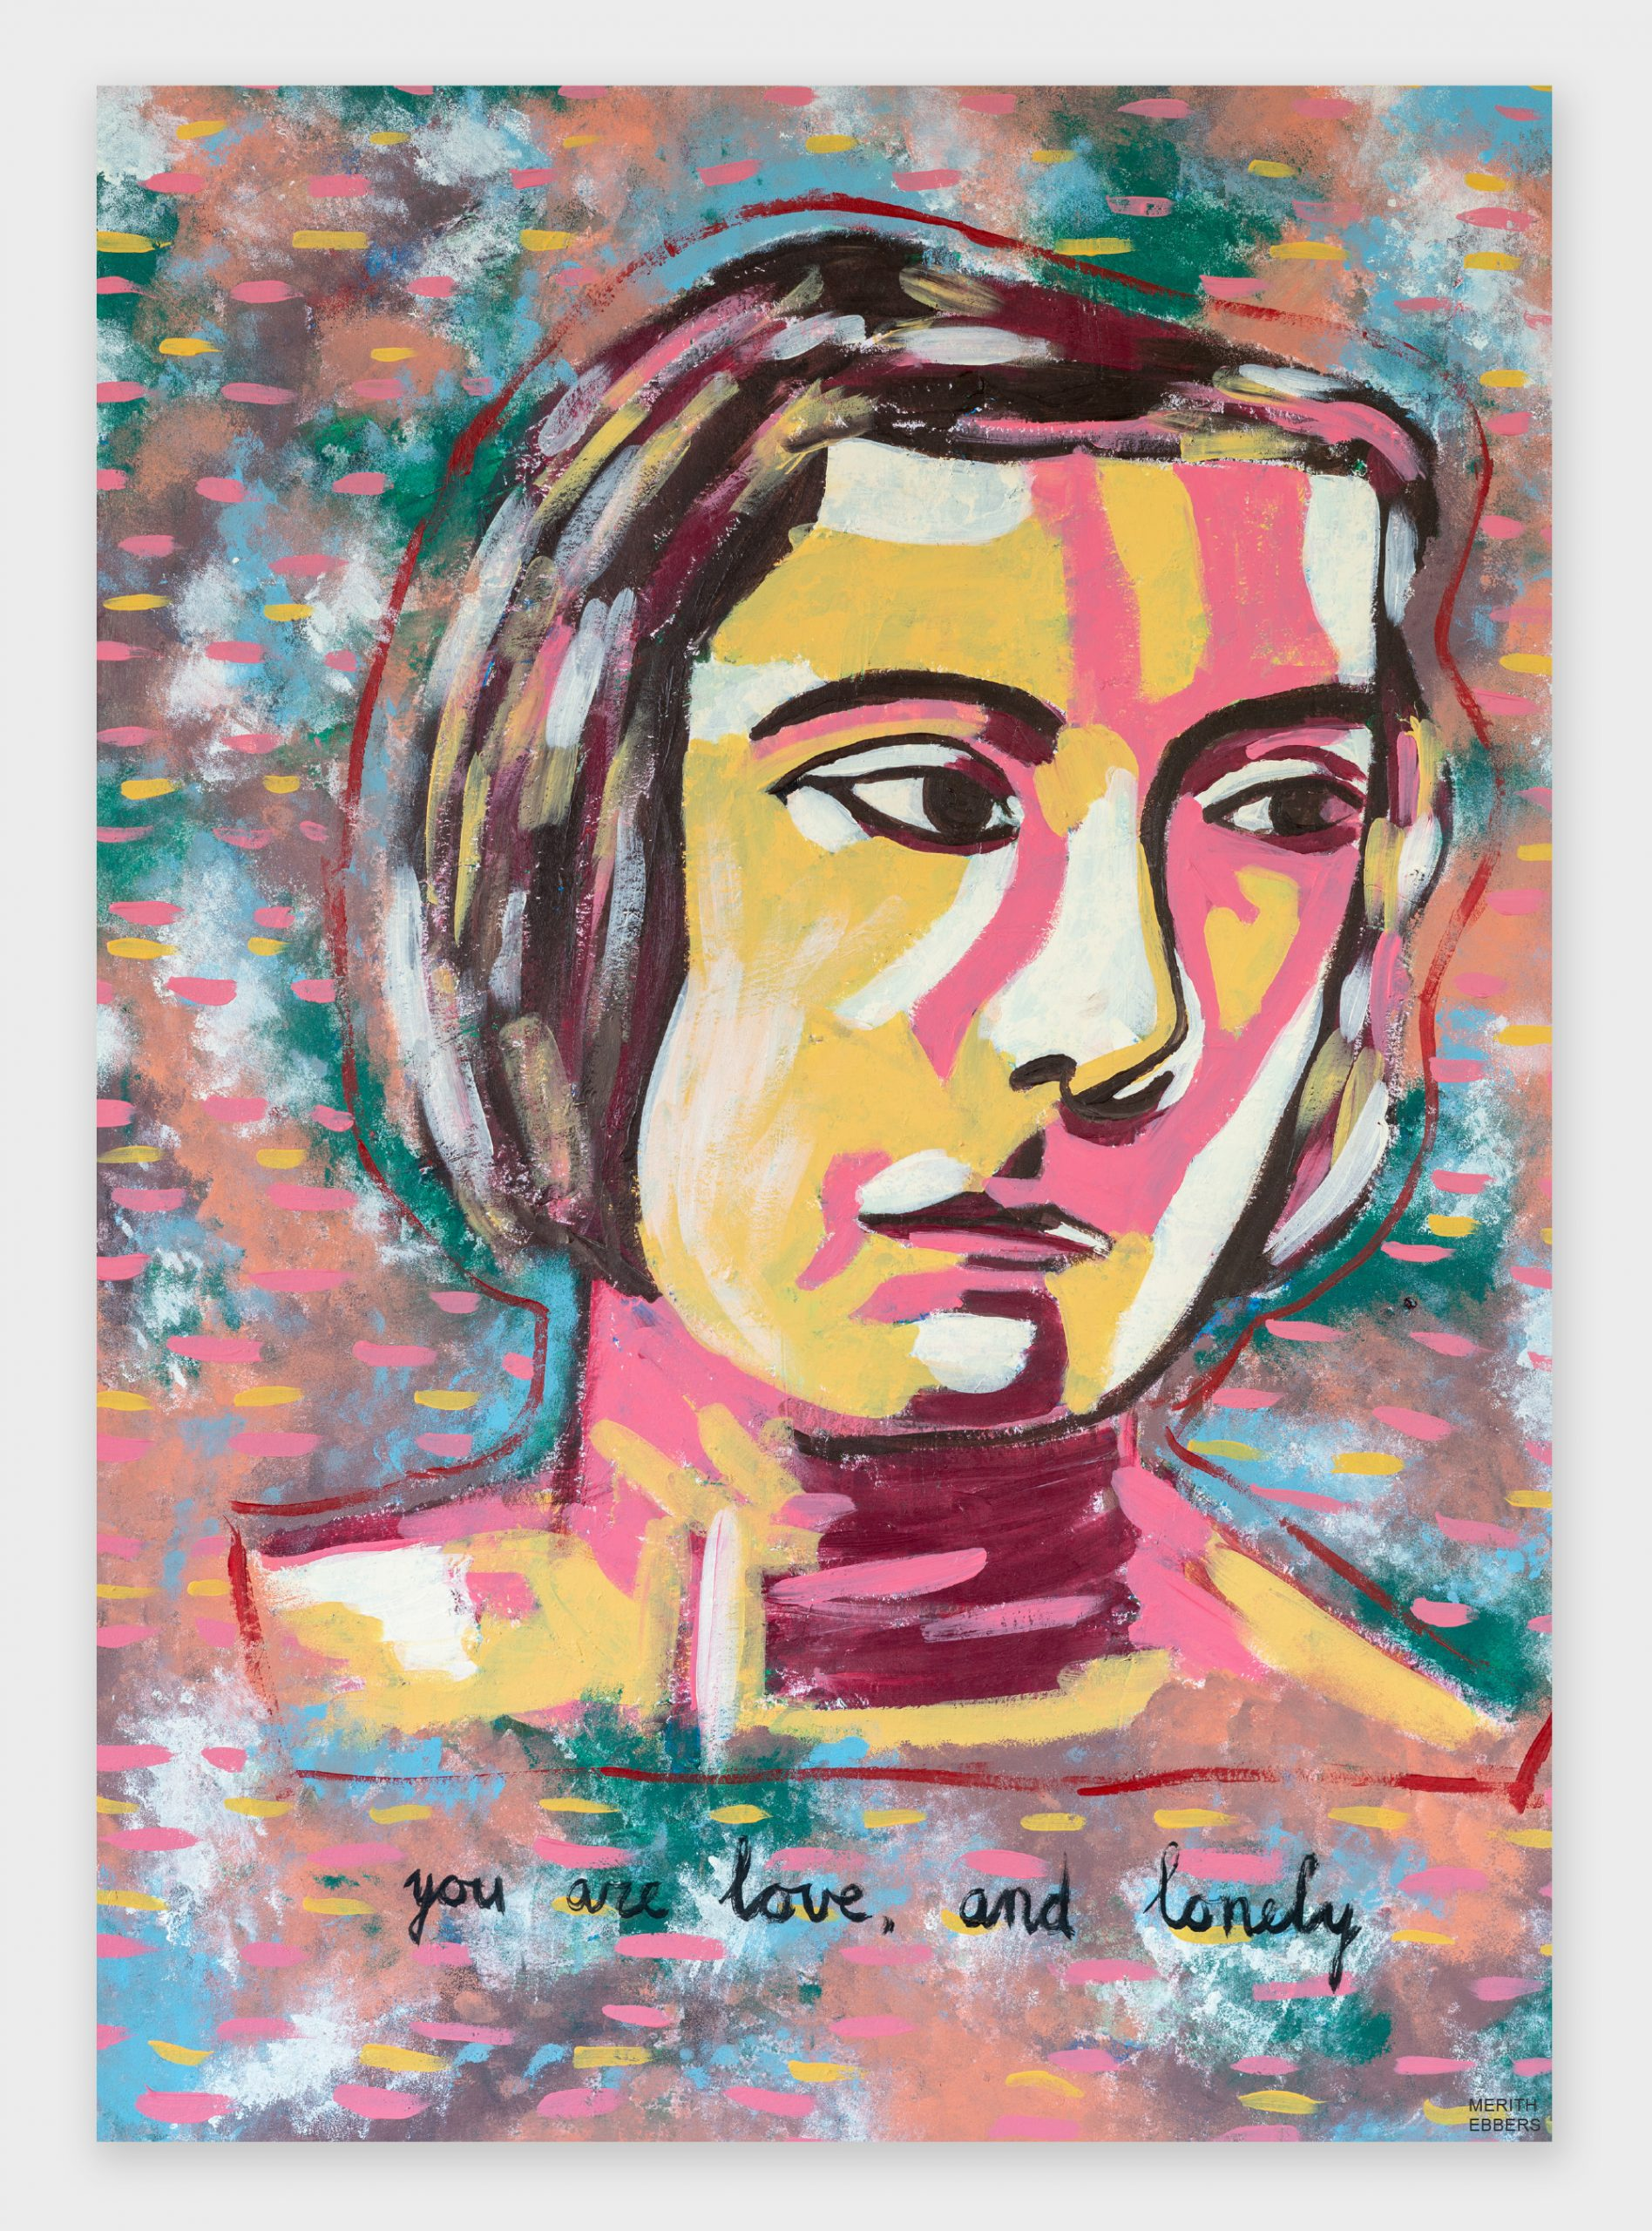 you are love and lonely gerard Reve painting